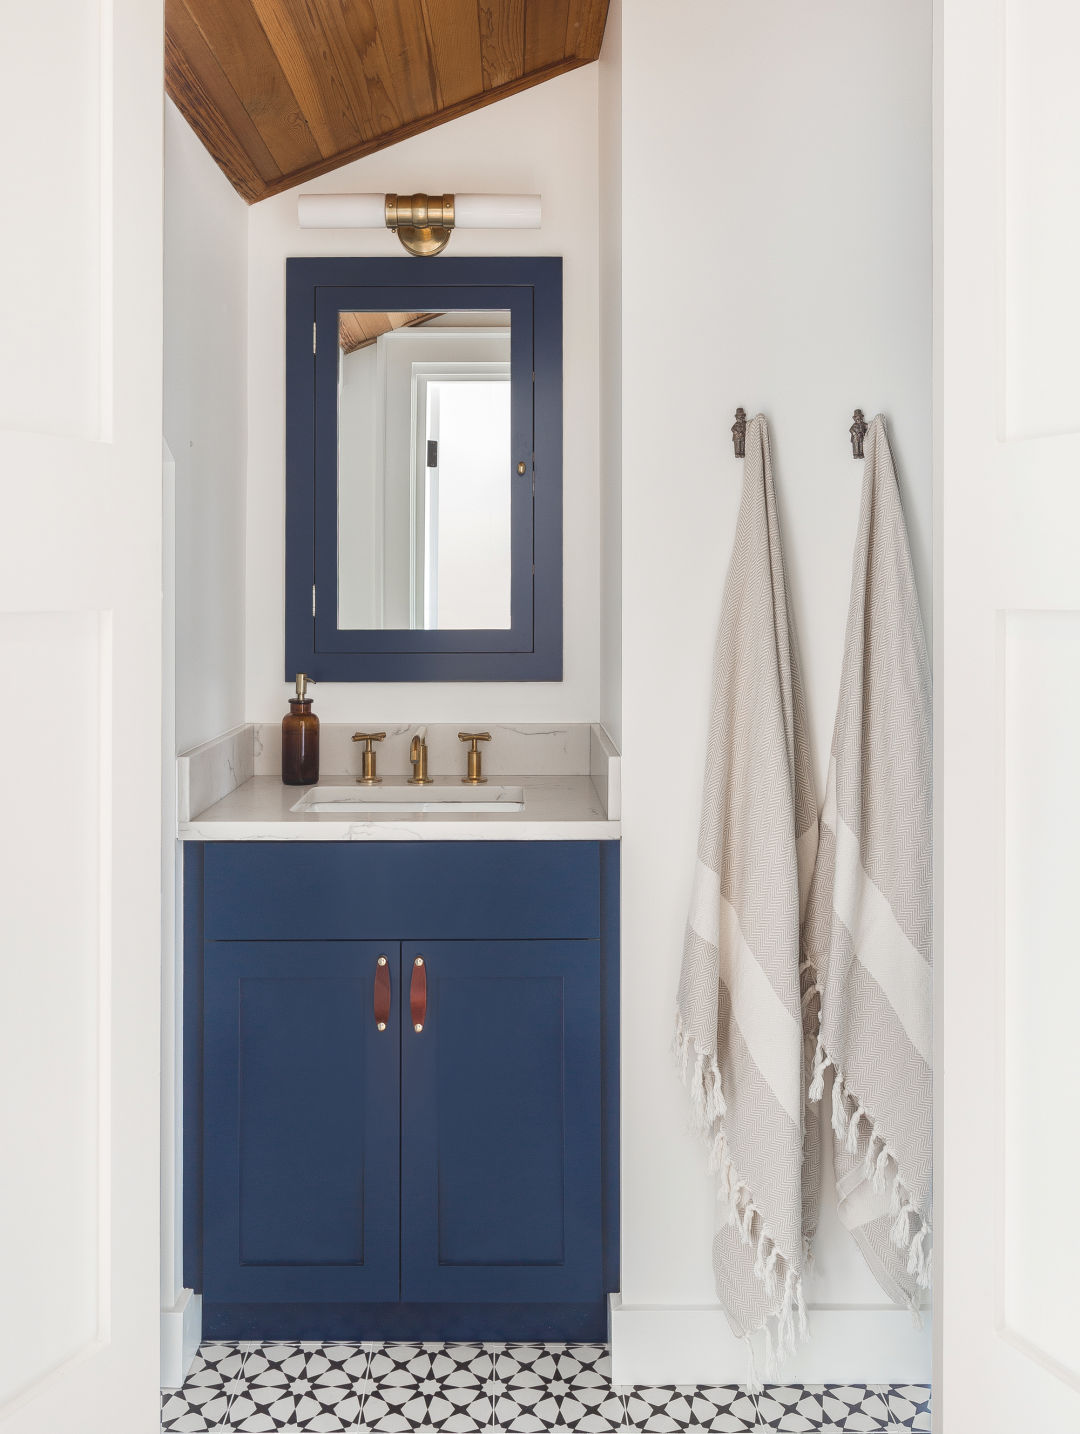 How to Remodel Your Bathroom without Getting Overwhelmed | Seattle Met